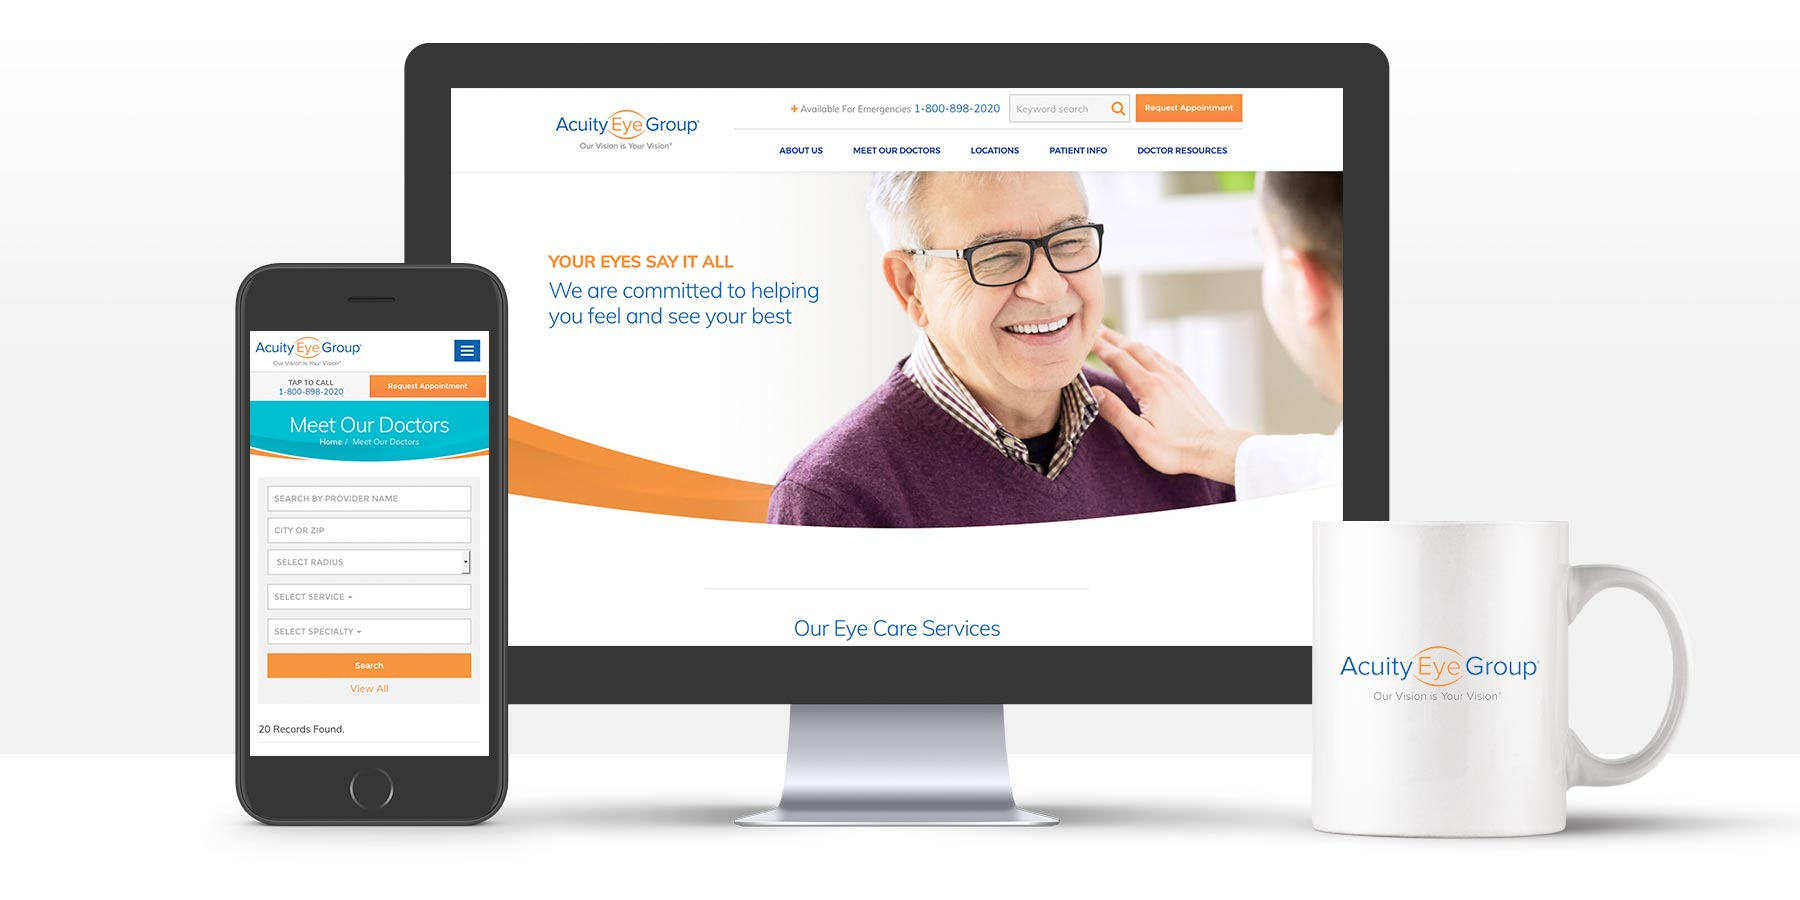 Acuity Eye Group website on various devices